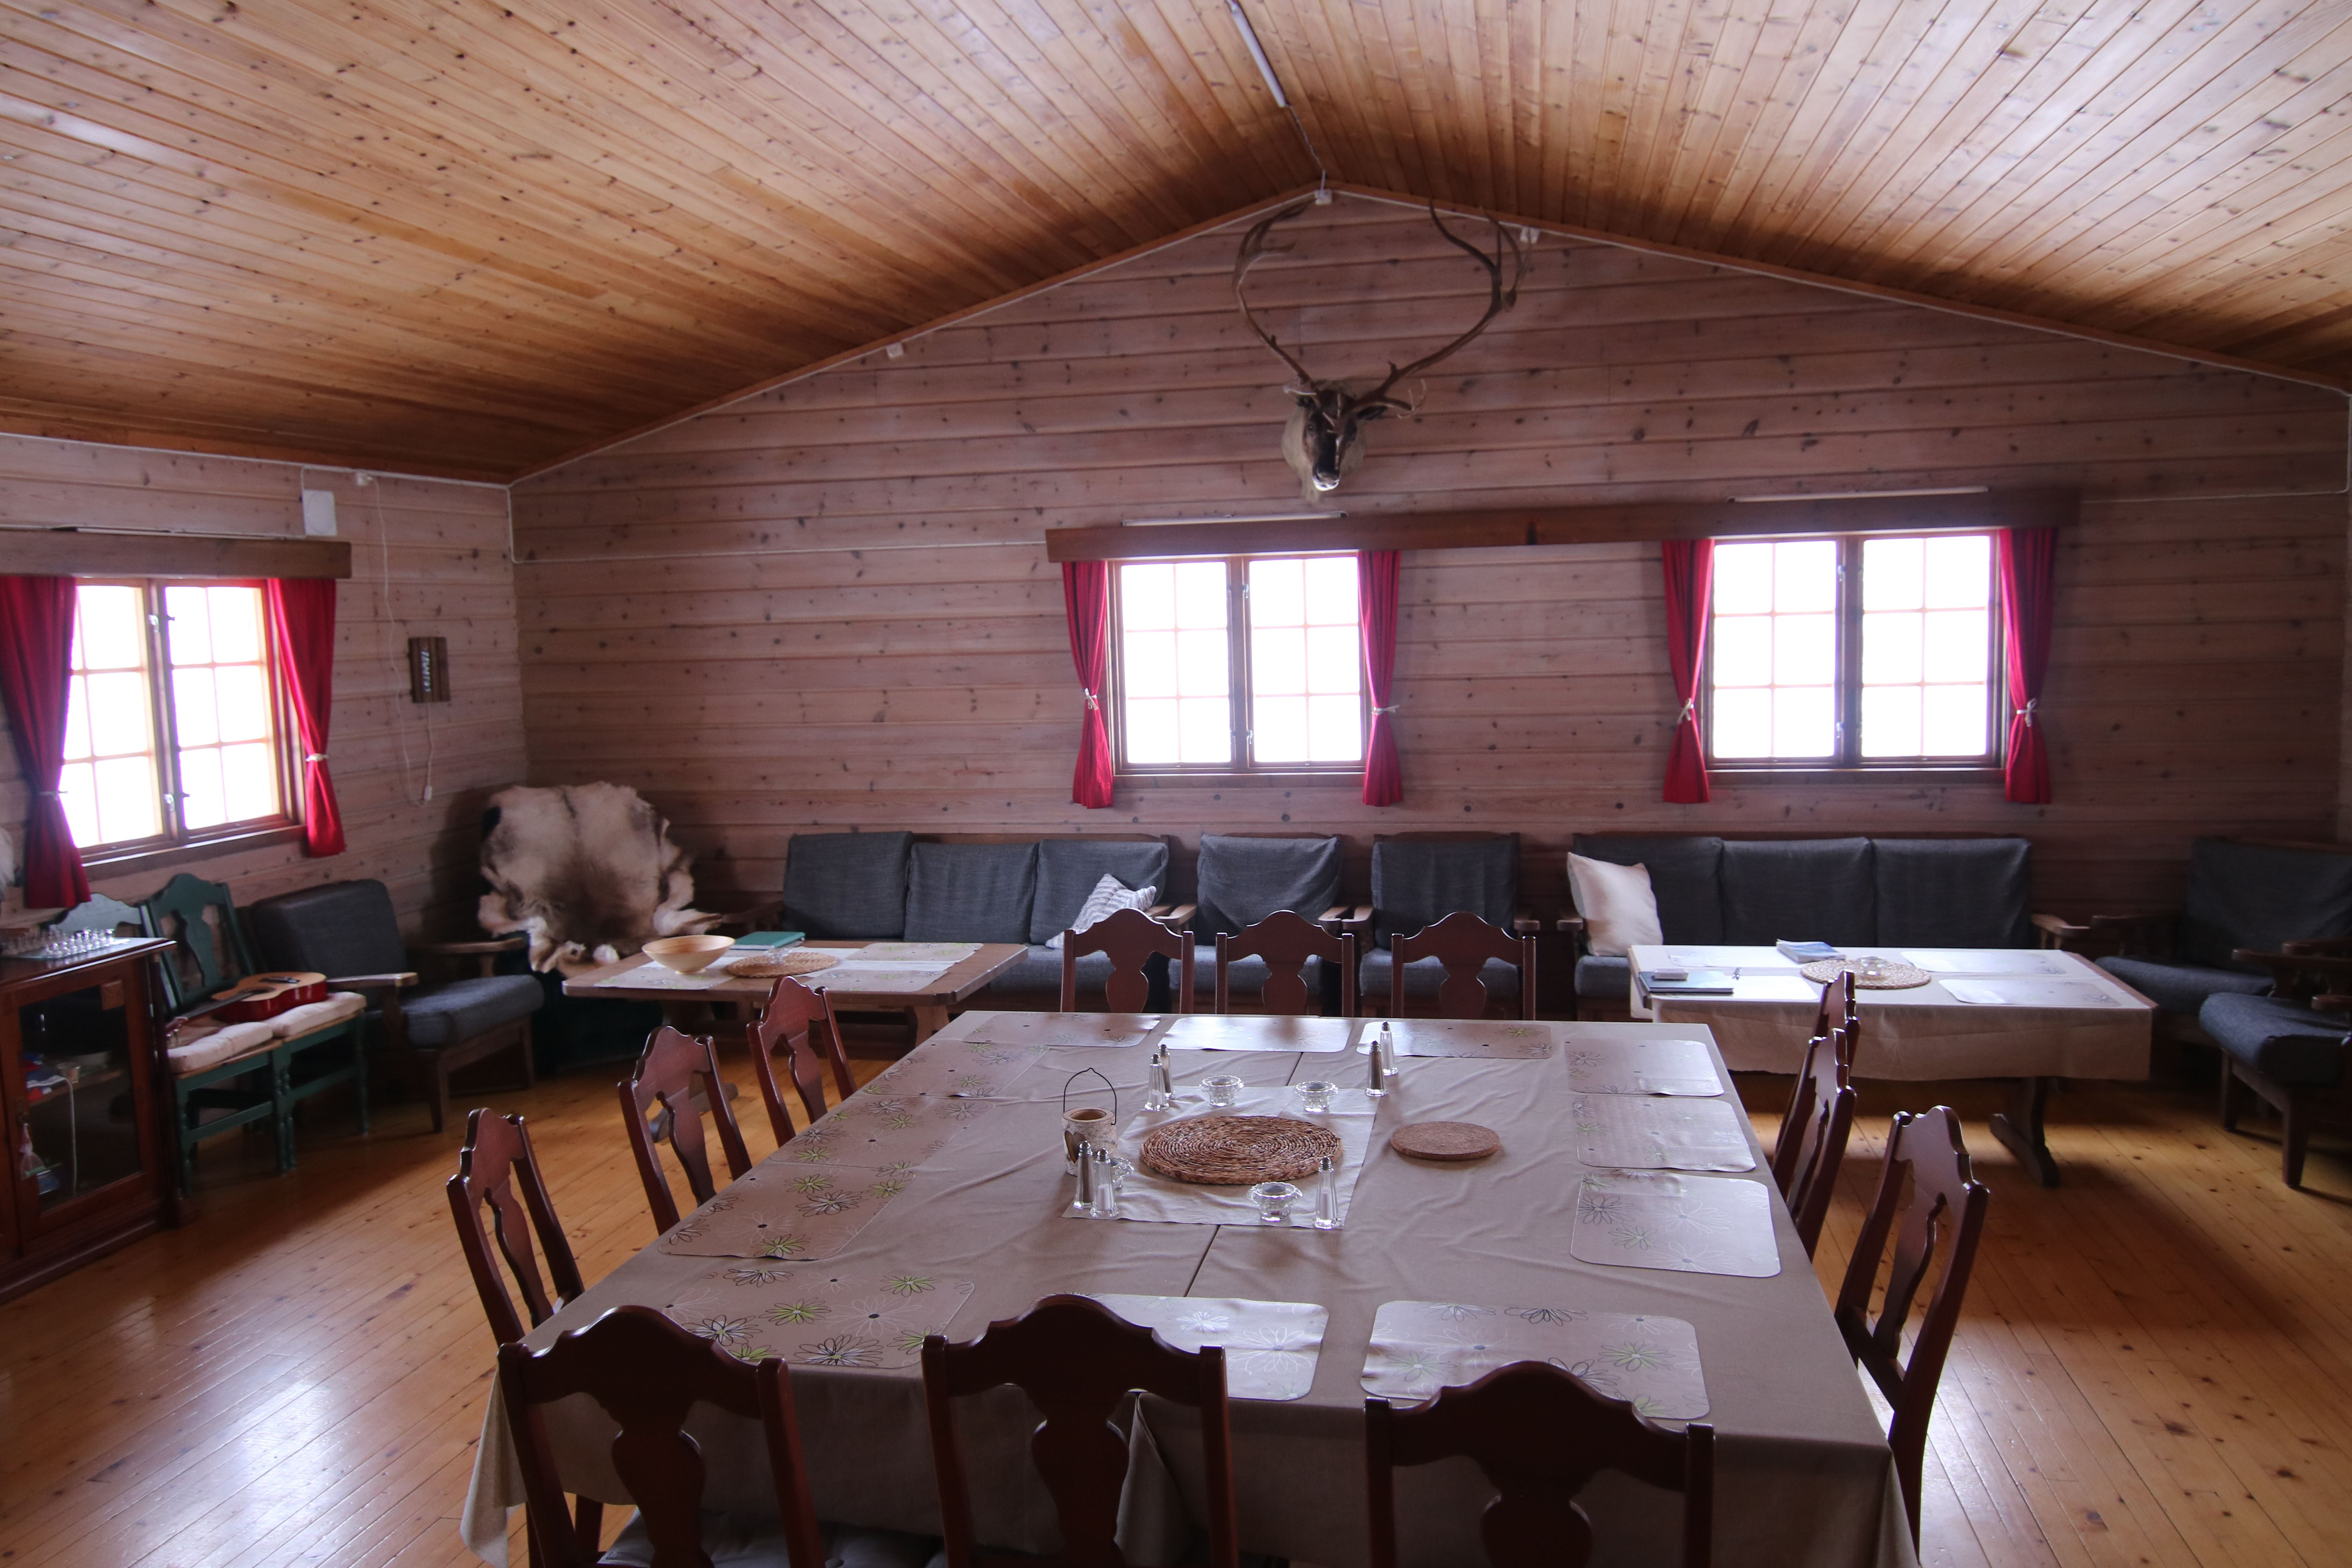 -SPECIAL OFFER- Overnight at Polar Cabin with Hiking Adventure -All included- (max.10 people) - Polar Cabin